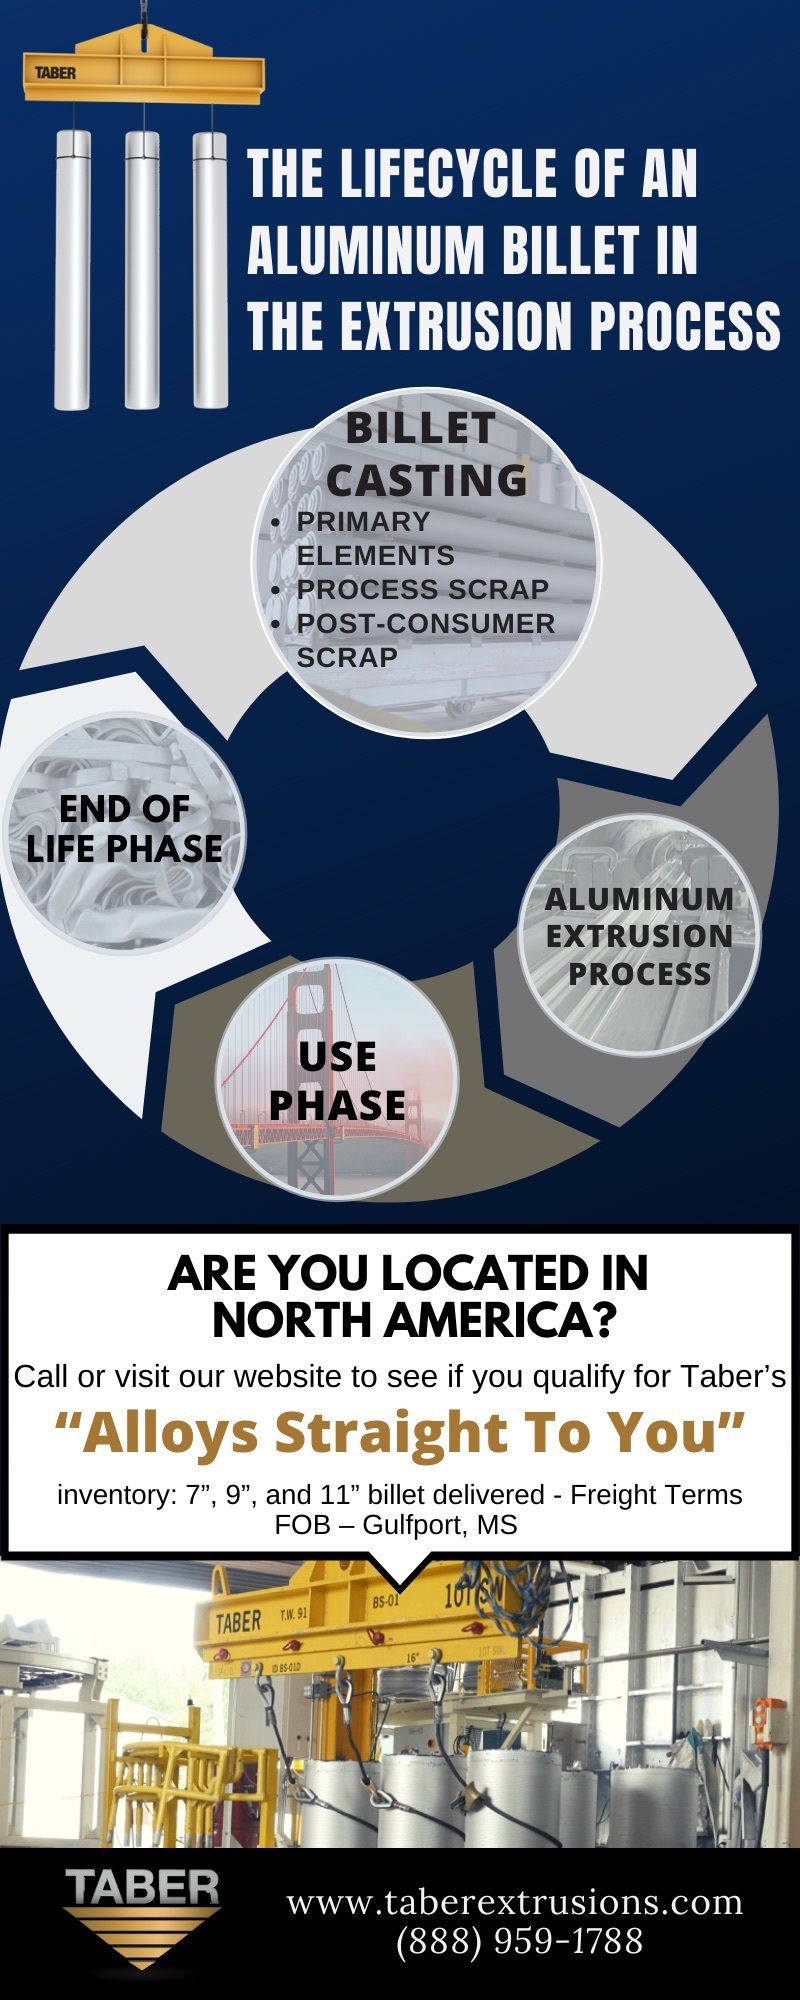 """infographic that takes us through the lifecycle of an aluminum billet in the extrusion process: 1. The aluminum alloy chemistry 2. Billet casting 3. Aluminum extrusion process 4.Delivery 5.End Product 6. Recycling! – Ending with a CTA that reads, """"Are you located in North America? Call or visit our website to see if you qualify for Taber's """"Billets Straight To You"""" inventory! 7"""", 9"""", and 11"""" billet delivered in a week!"""""""